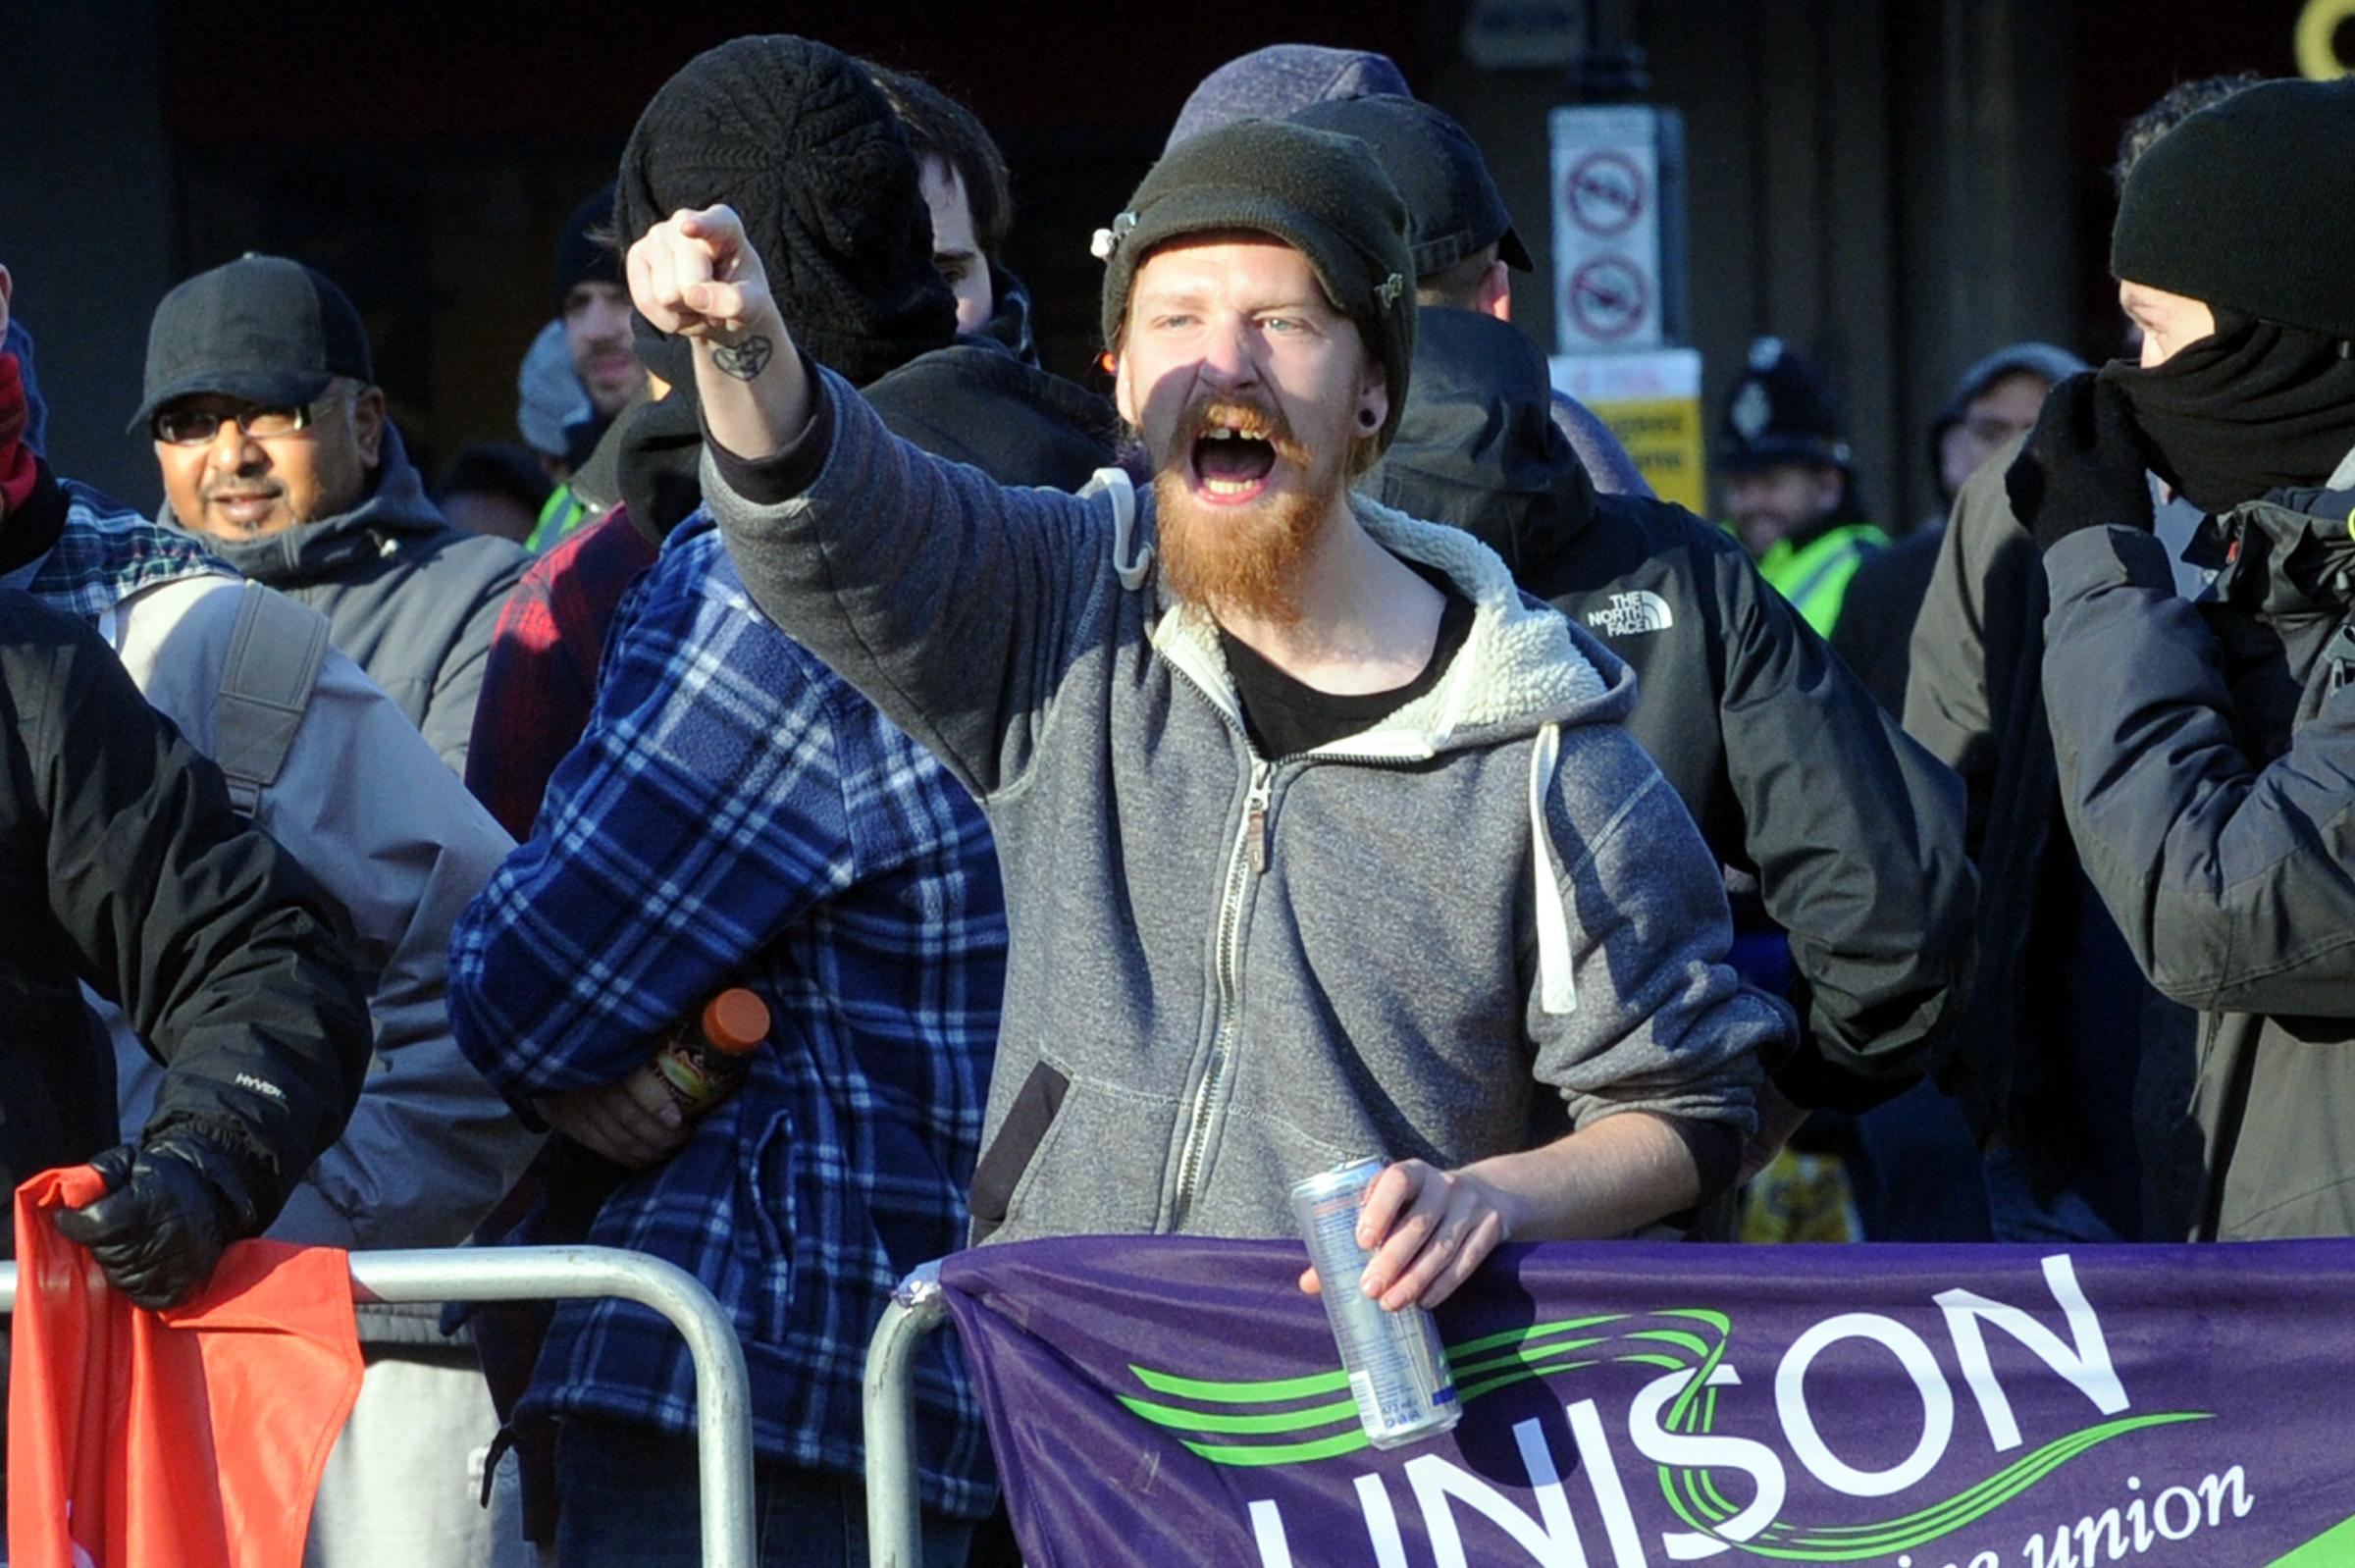 Communist extremist from UAF supporting new Bolton mega mosque